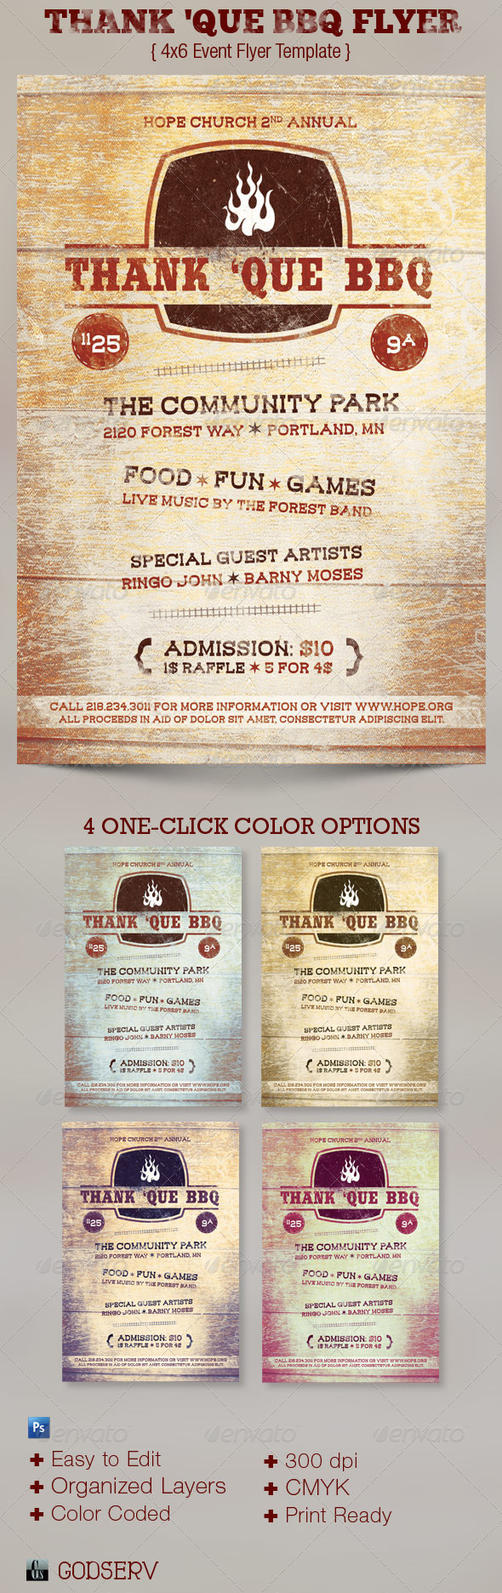 bbq tickets template - thank que western bbq charity flyer template by godserv on